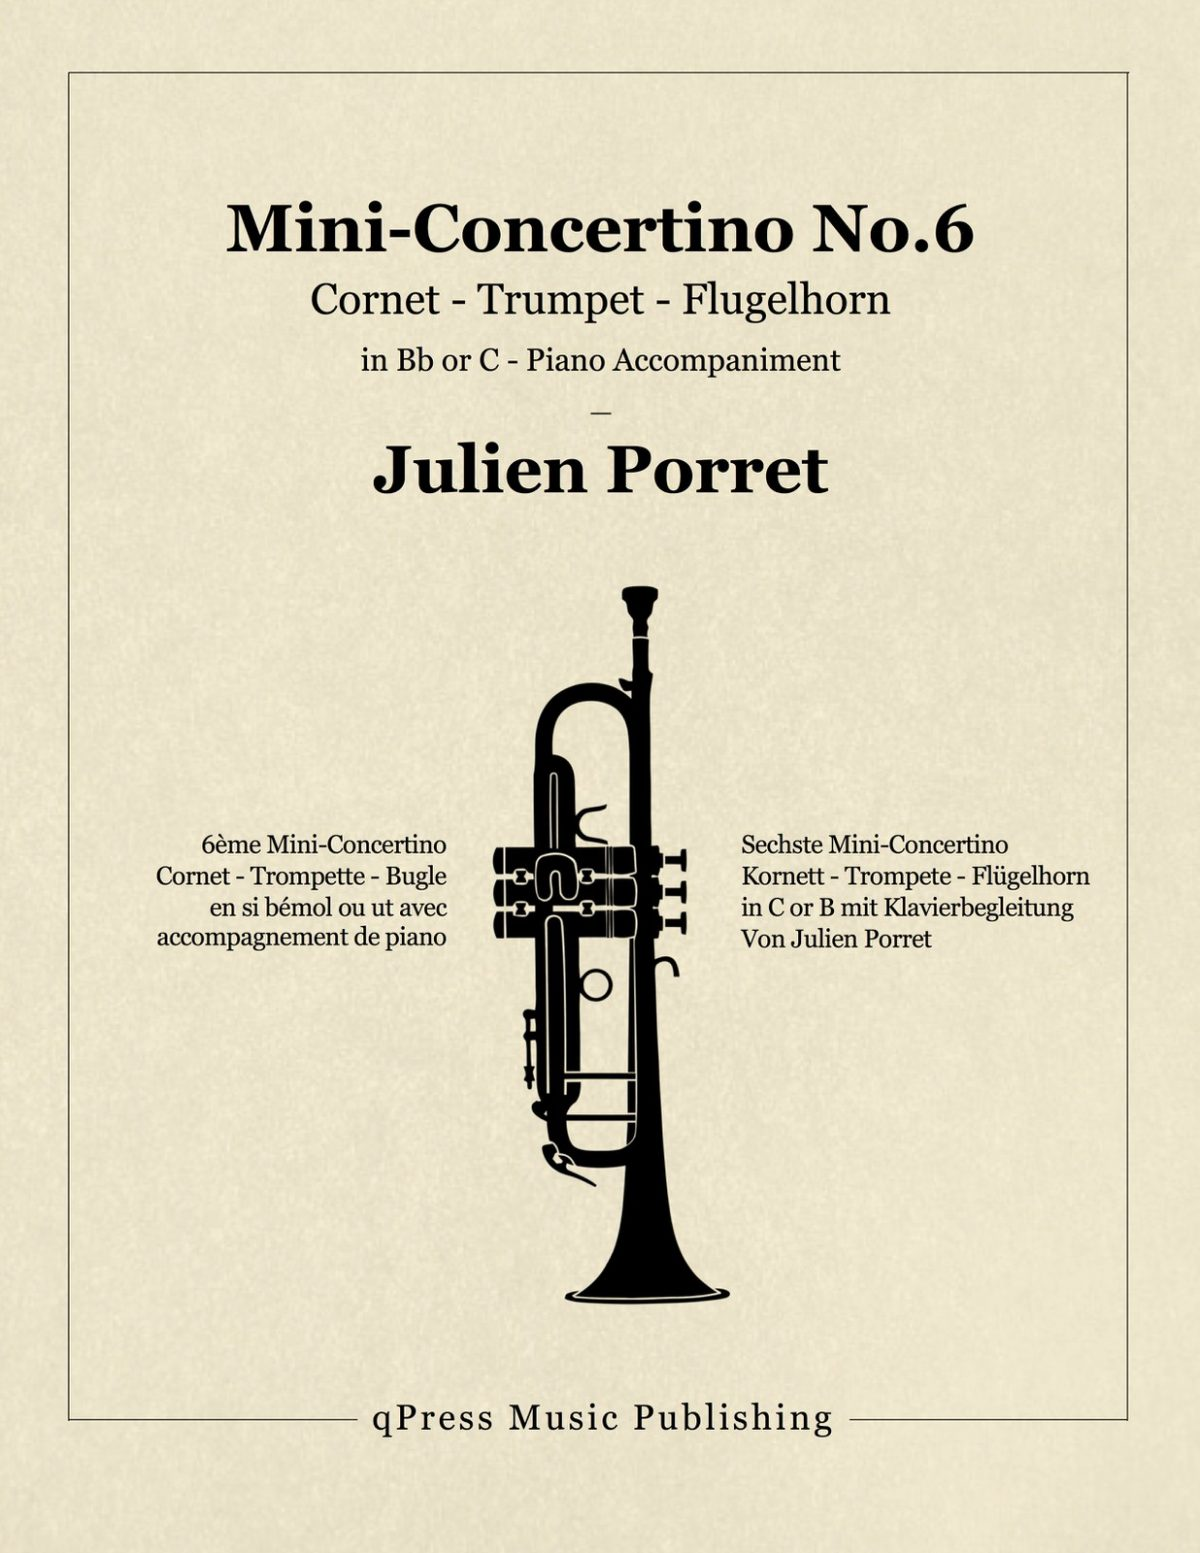 Porret, Mini-Concertino No.6-p1